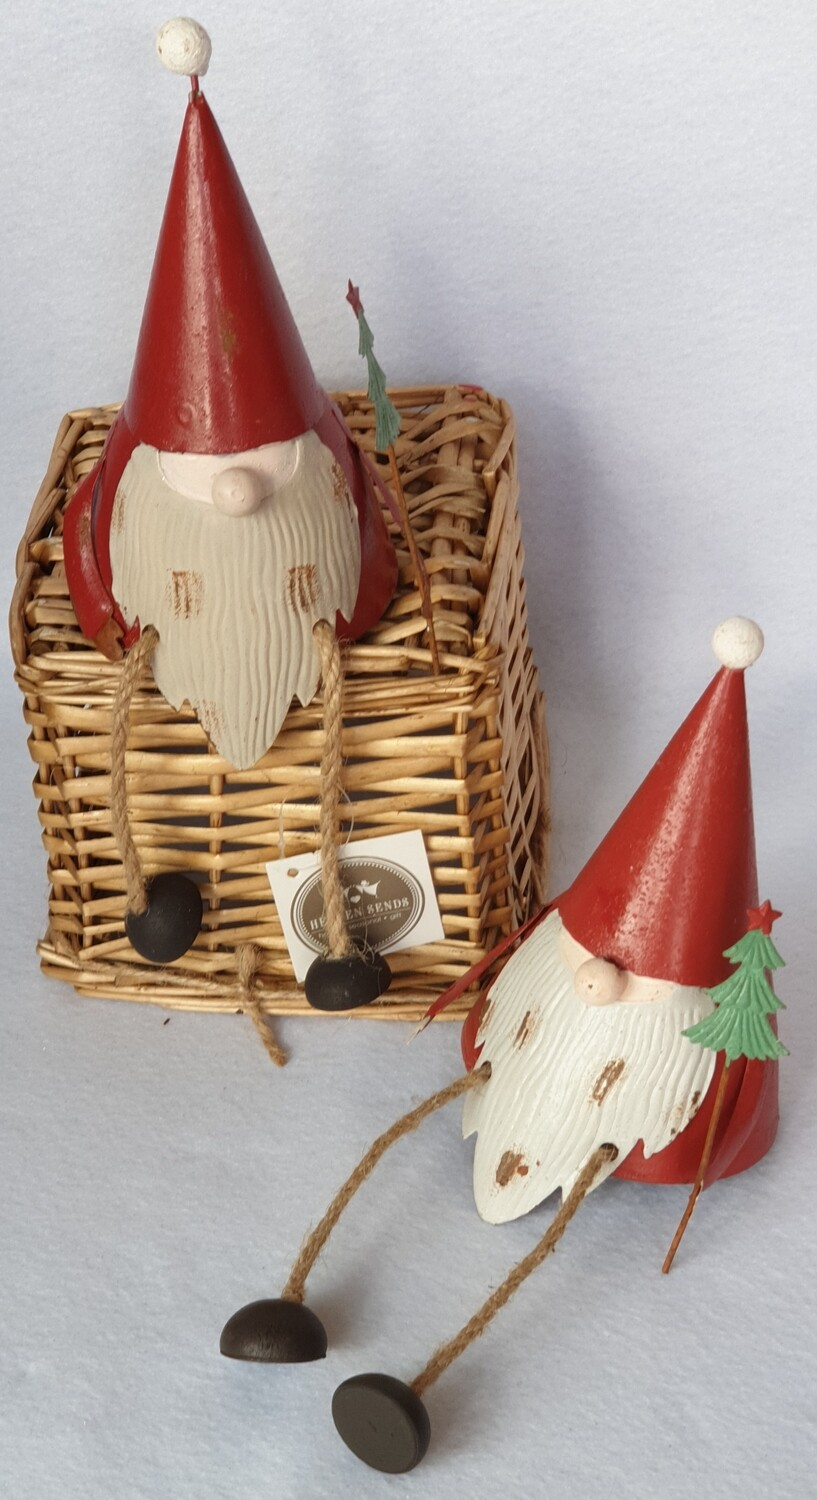 Rustic metal sitting Santa Christmas decorations - Set of 2